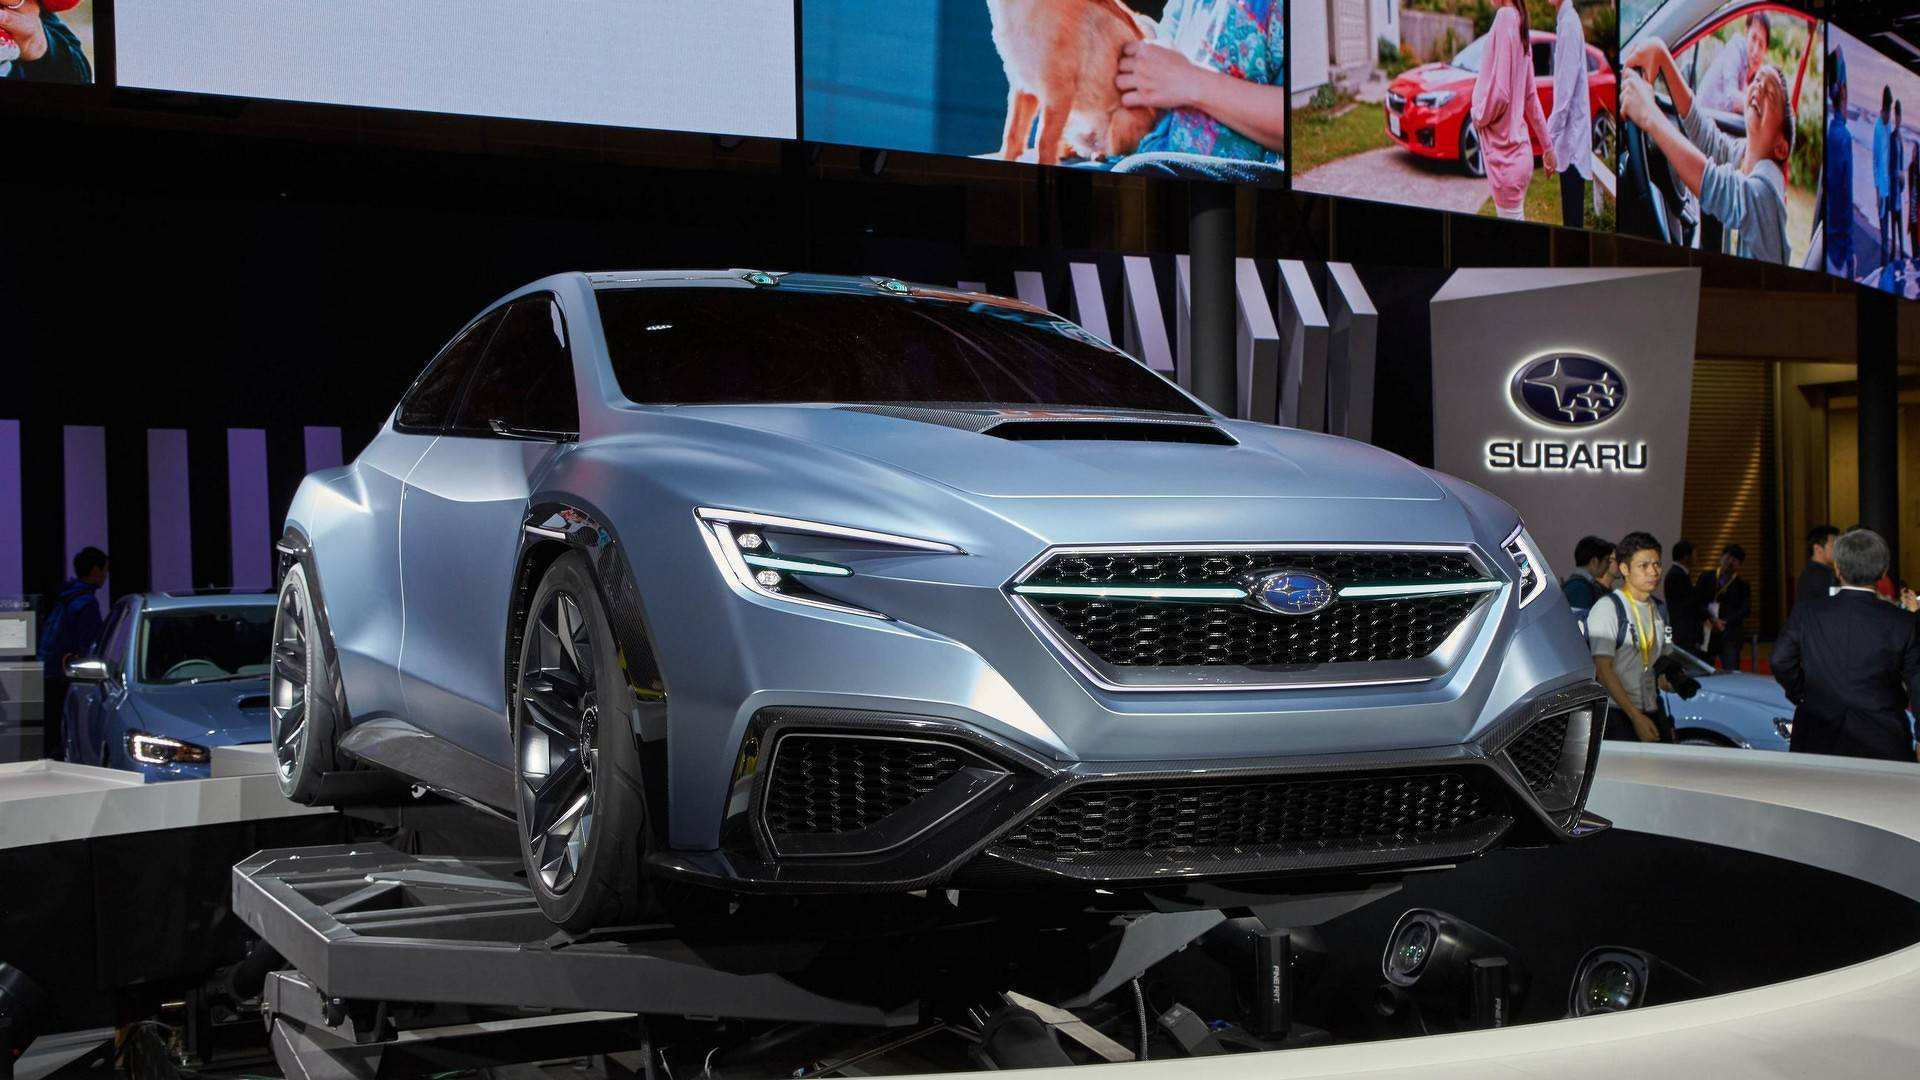 65 New 2020 Subaru Sti Rumors Pictures by 2020 Subaru Sti Rumors